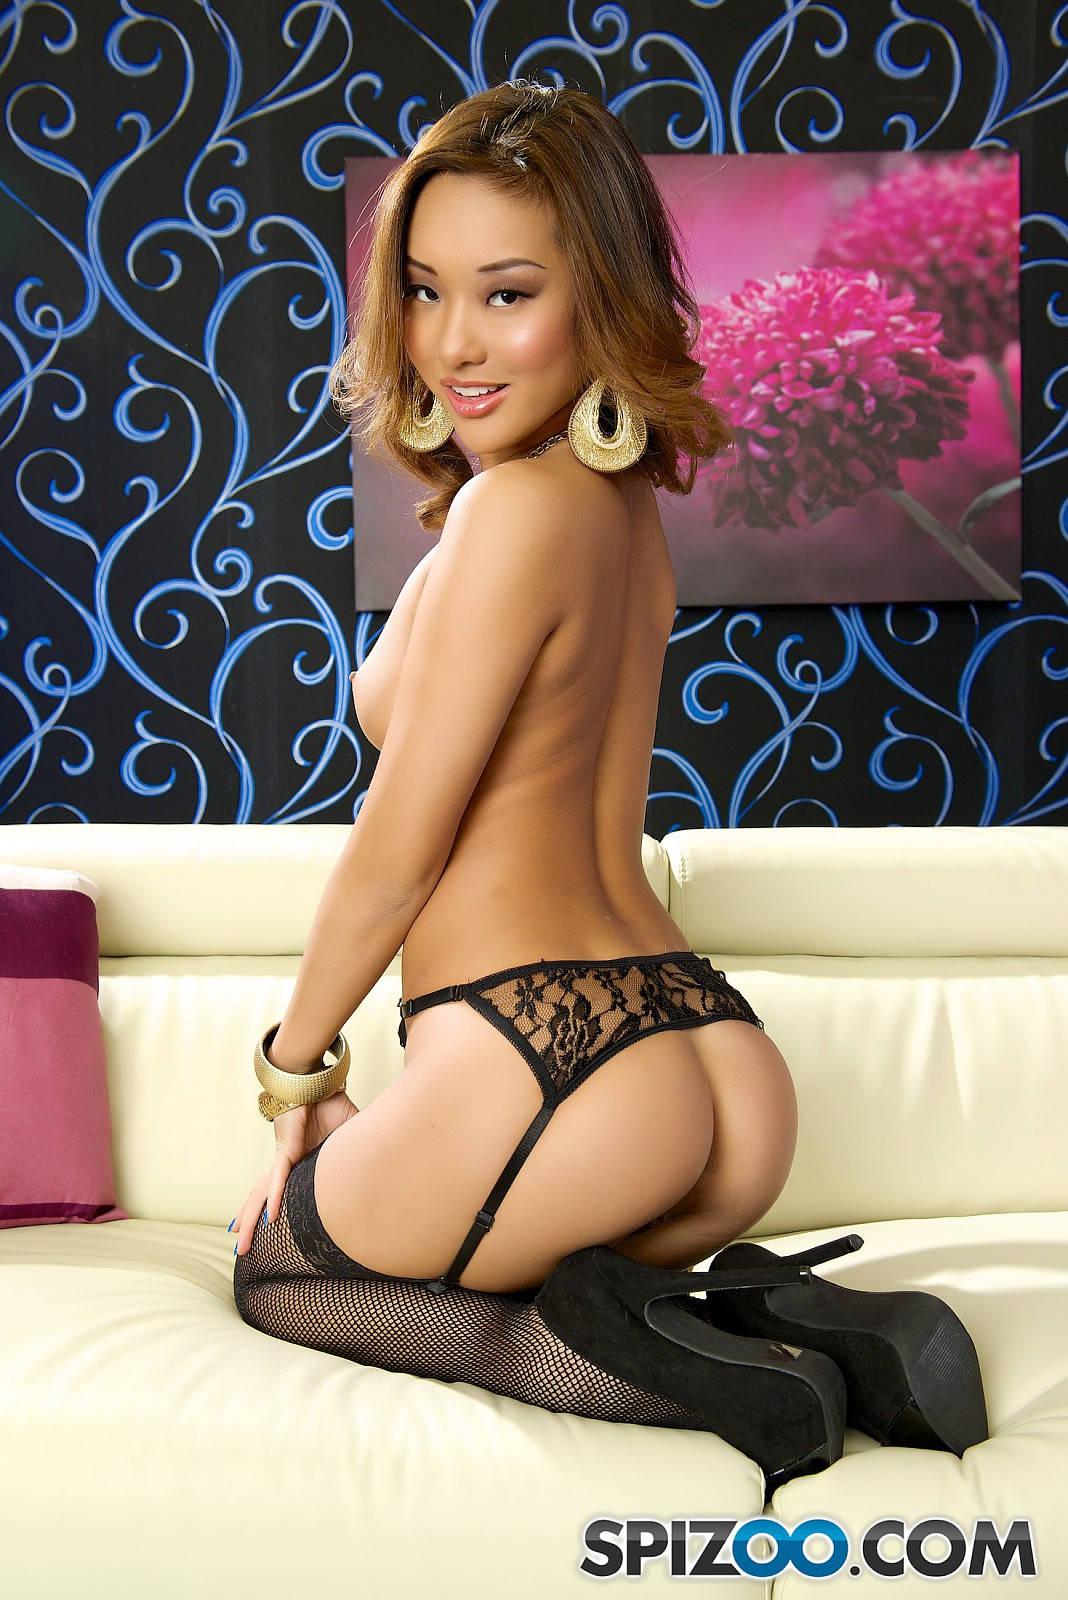 Asian Babes DB » Classy Nude Chinese Girl Pictures